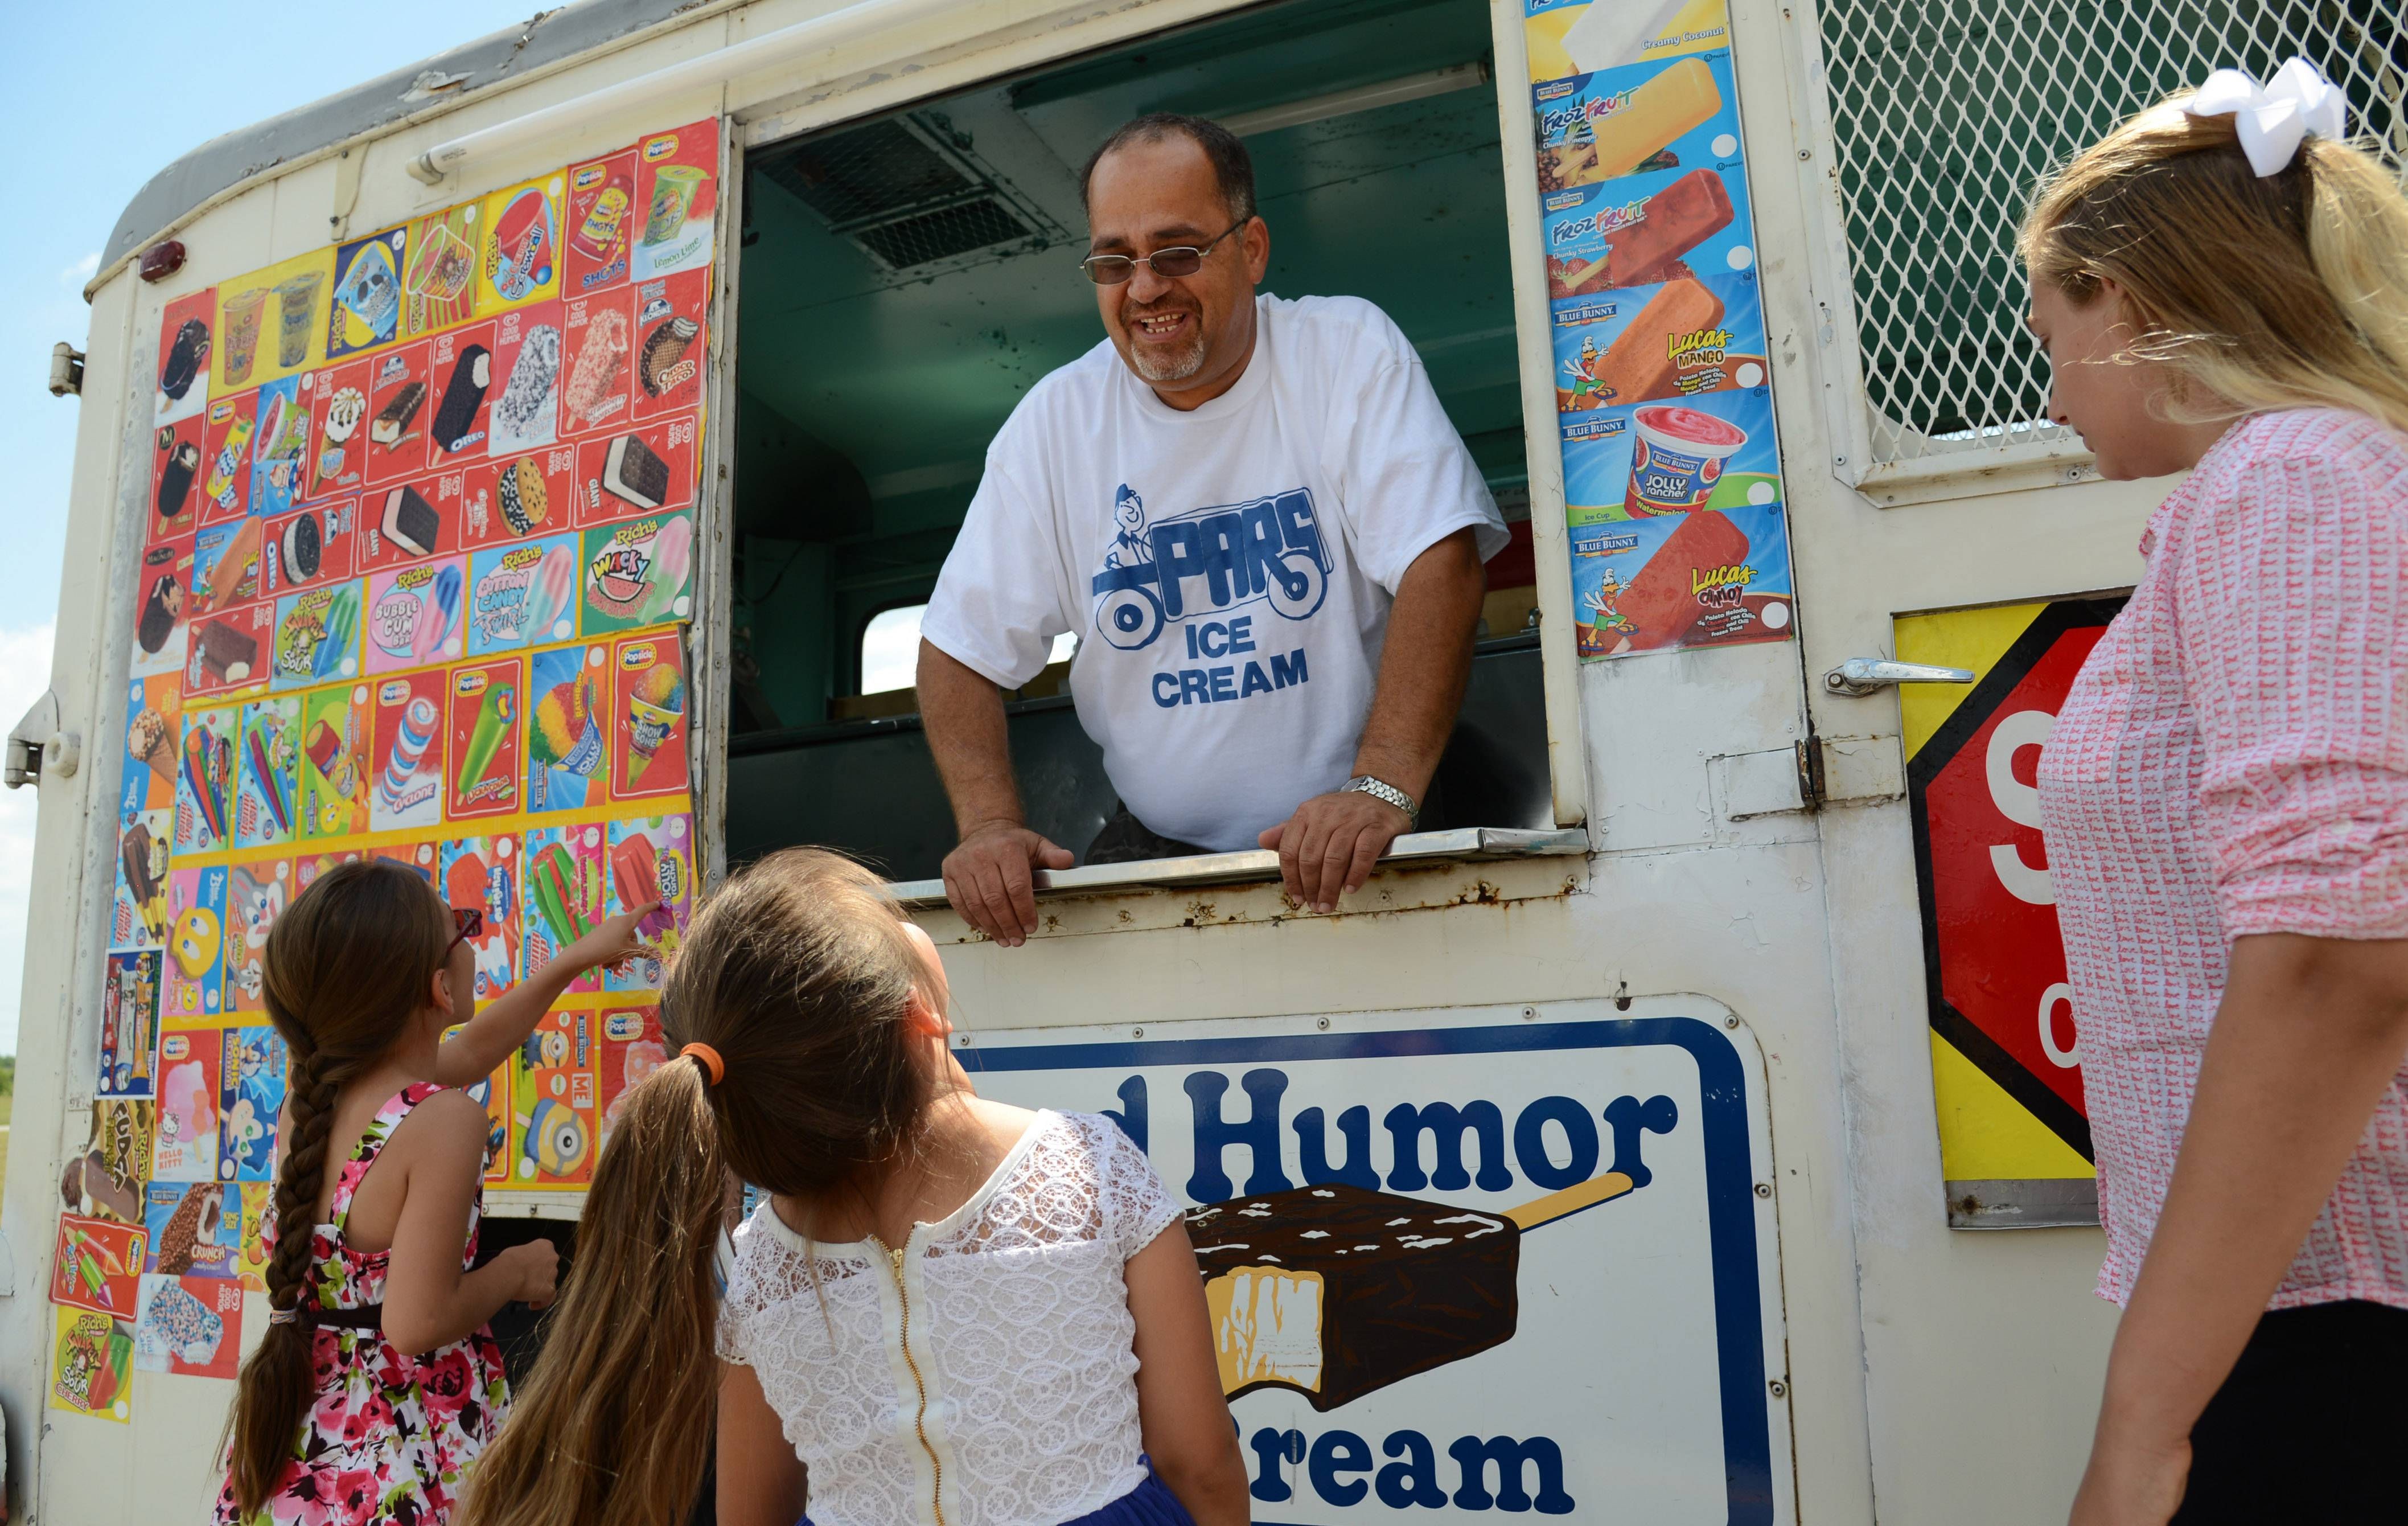 Mundelein officially ended a decades-old prohibition on ice cream trucks. One vendor, Abdalla Alassuli, is cruising the Mundelein streets selling his products.